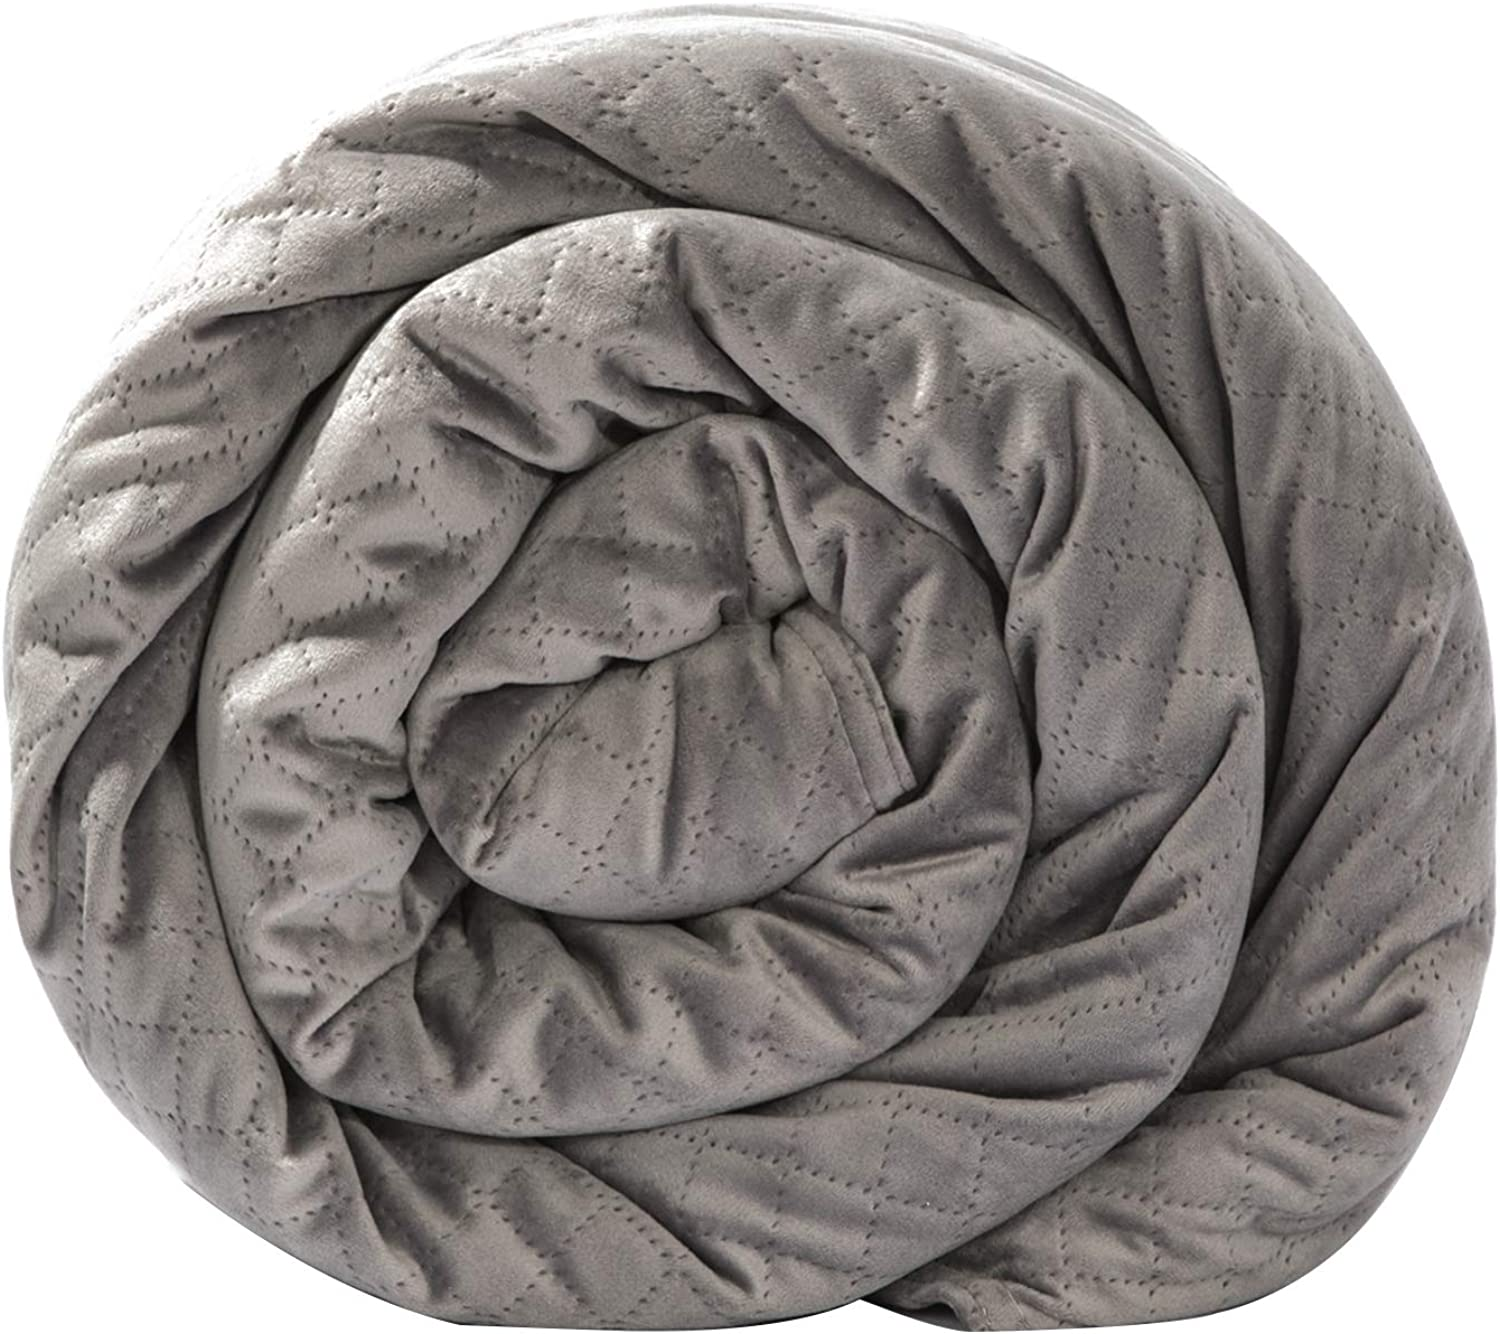 BlanQuil Quilted Weighted Blanket (Grey 20lb) W Removable Cover.